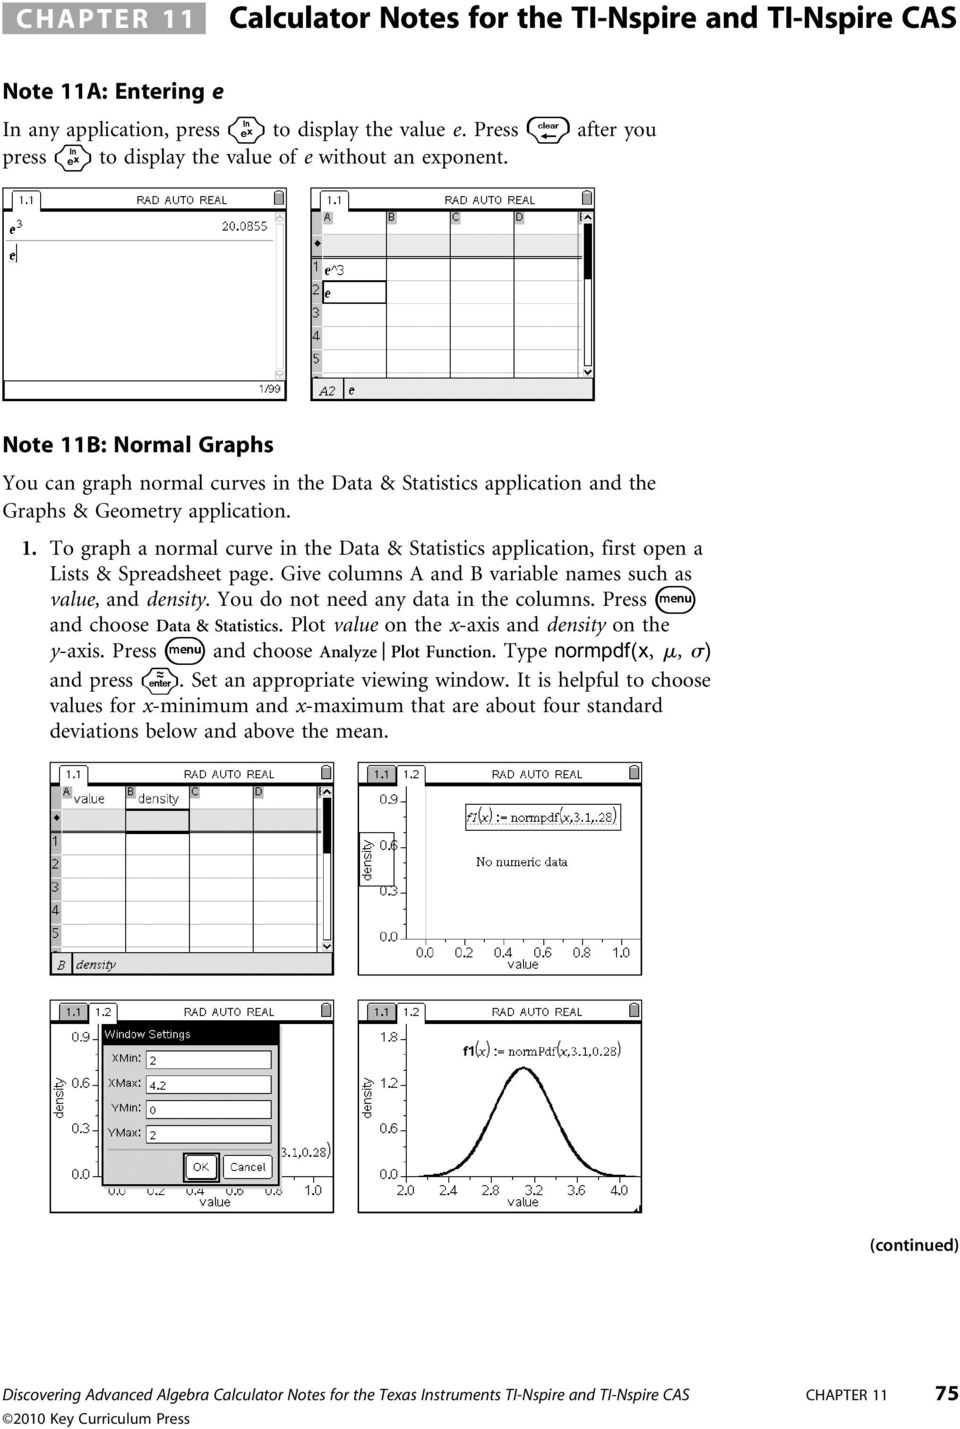 Calculator Notes for the TI-Nspire and TI-Nspire CAS - PDF